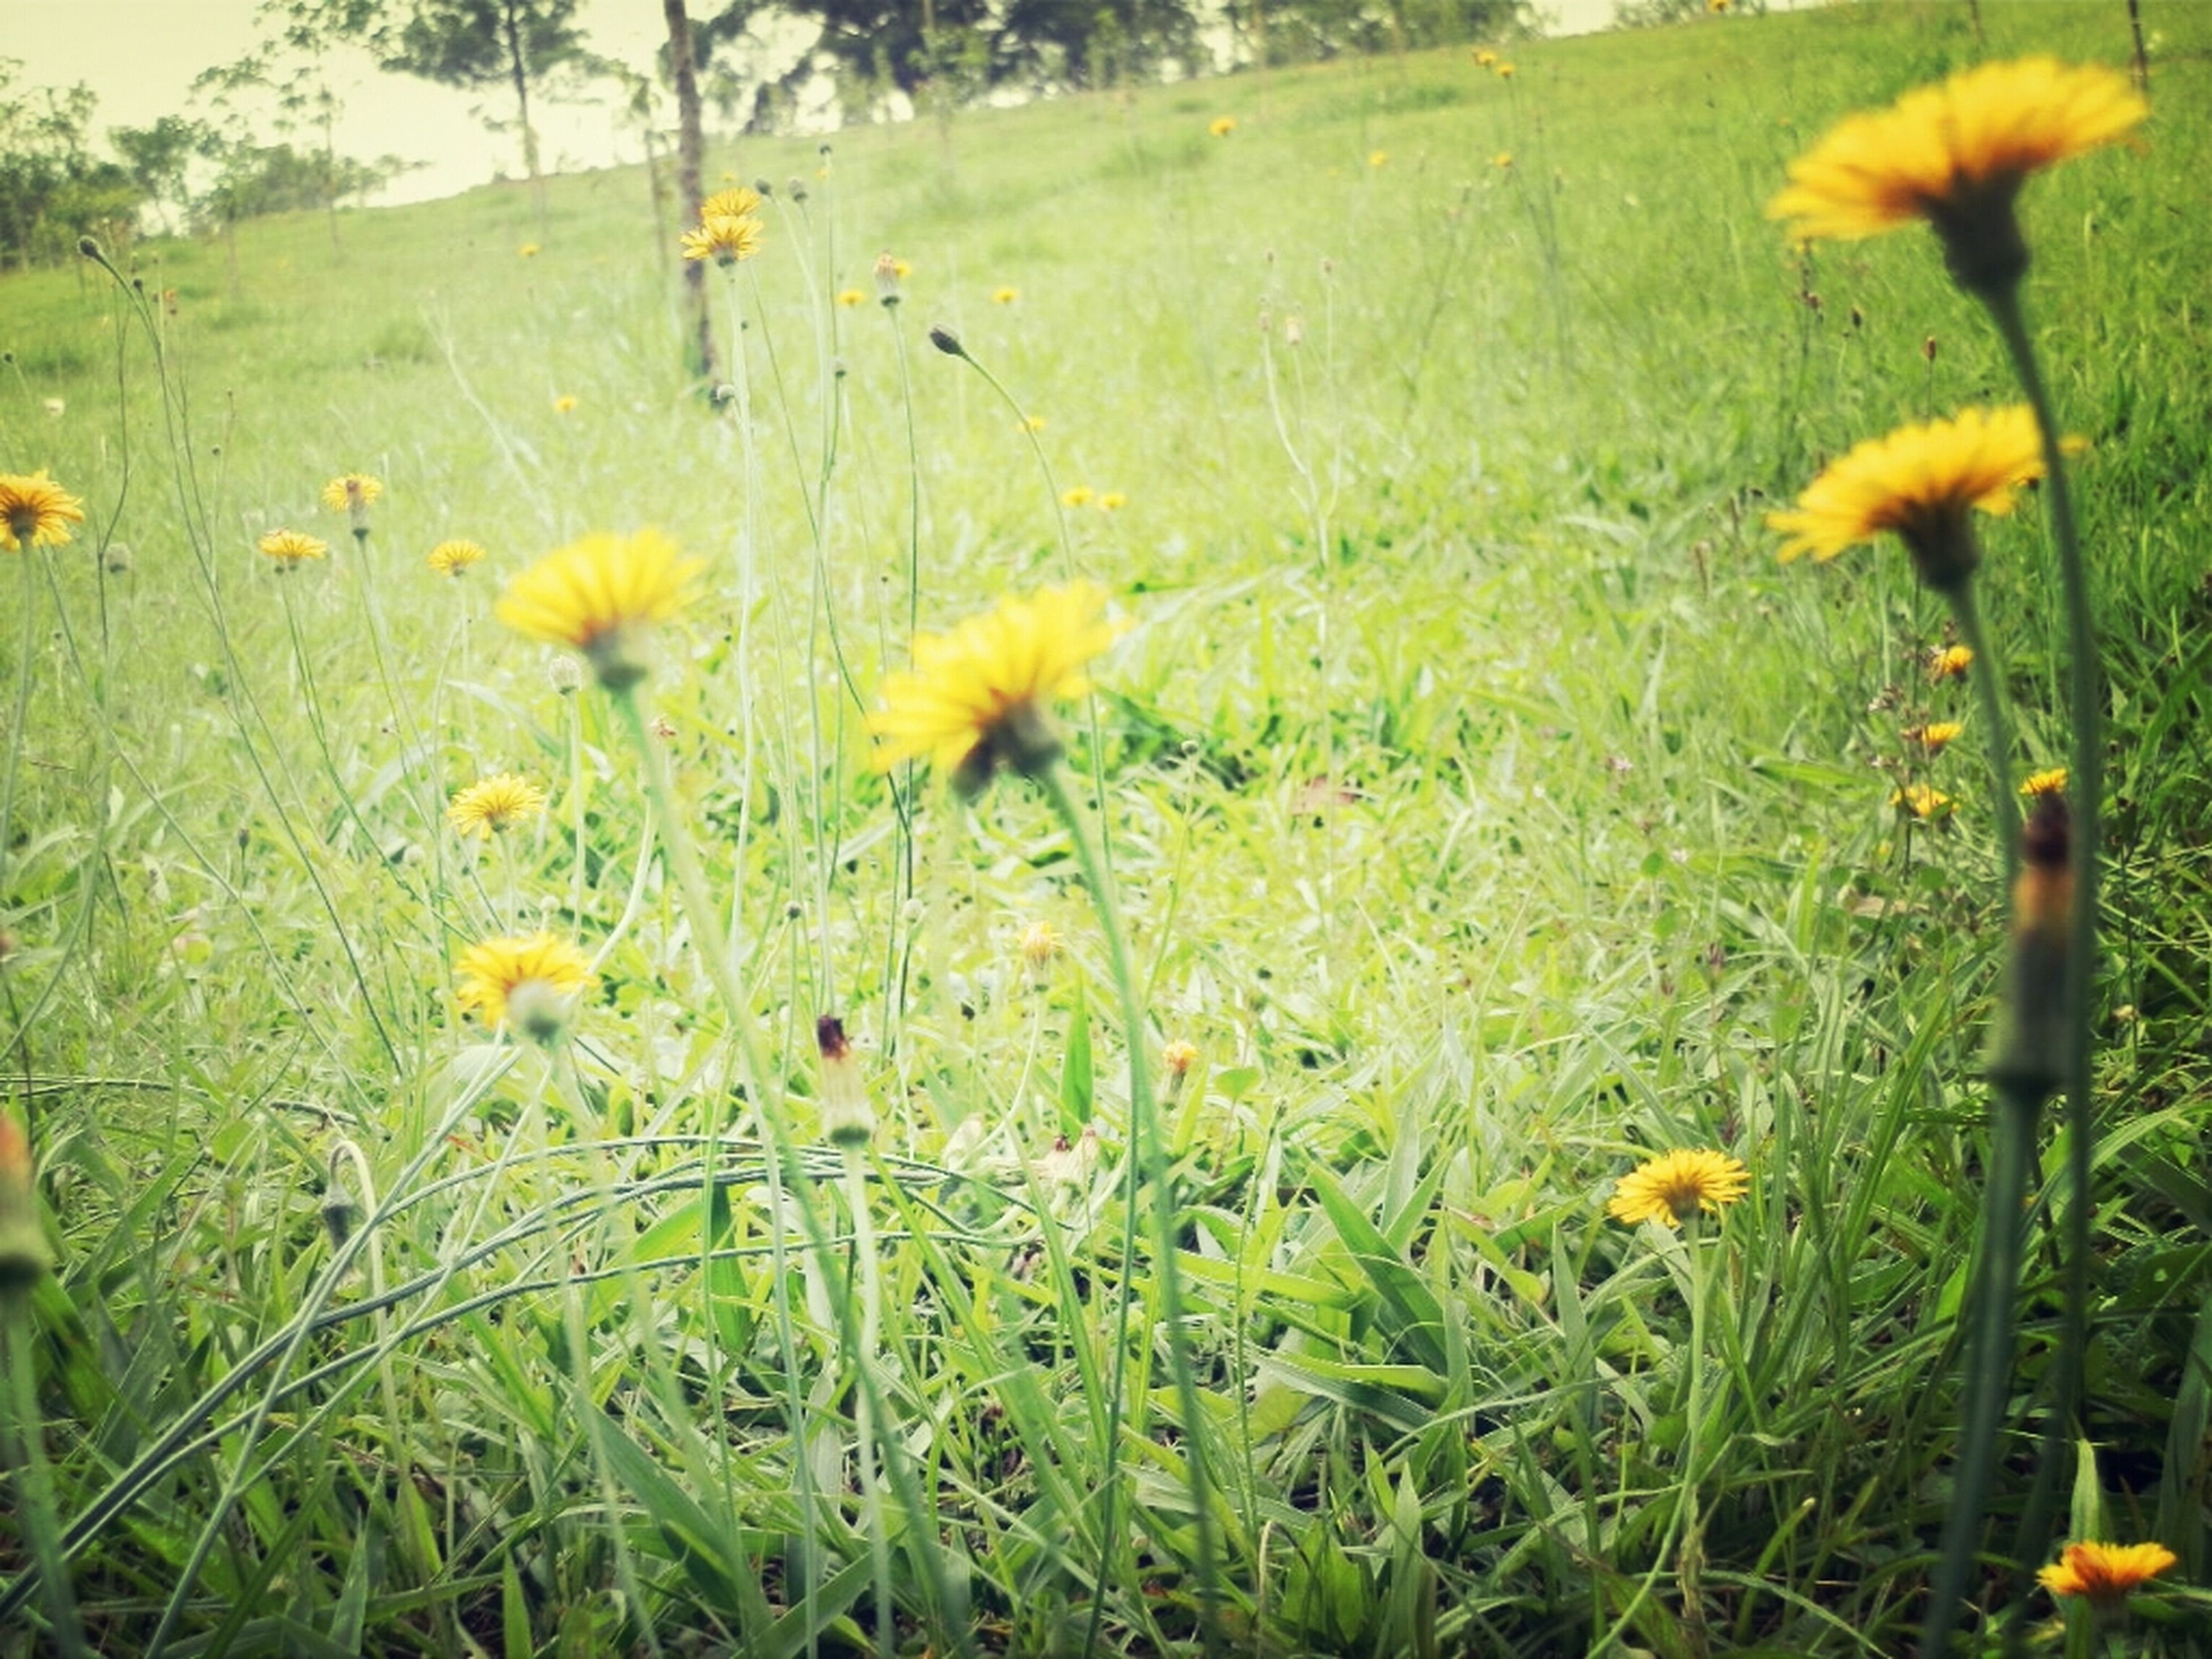 flower, growth, freshness, yellow, beauty in nature, field, plant, fragility, nature, blooming, wildflower, grass, green color, stem, tranquility, in bloom, petal, tranquil scene, uncultivated, growing